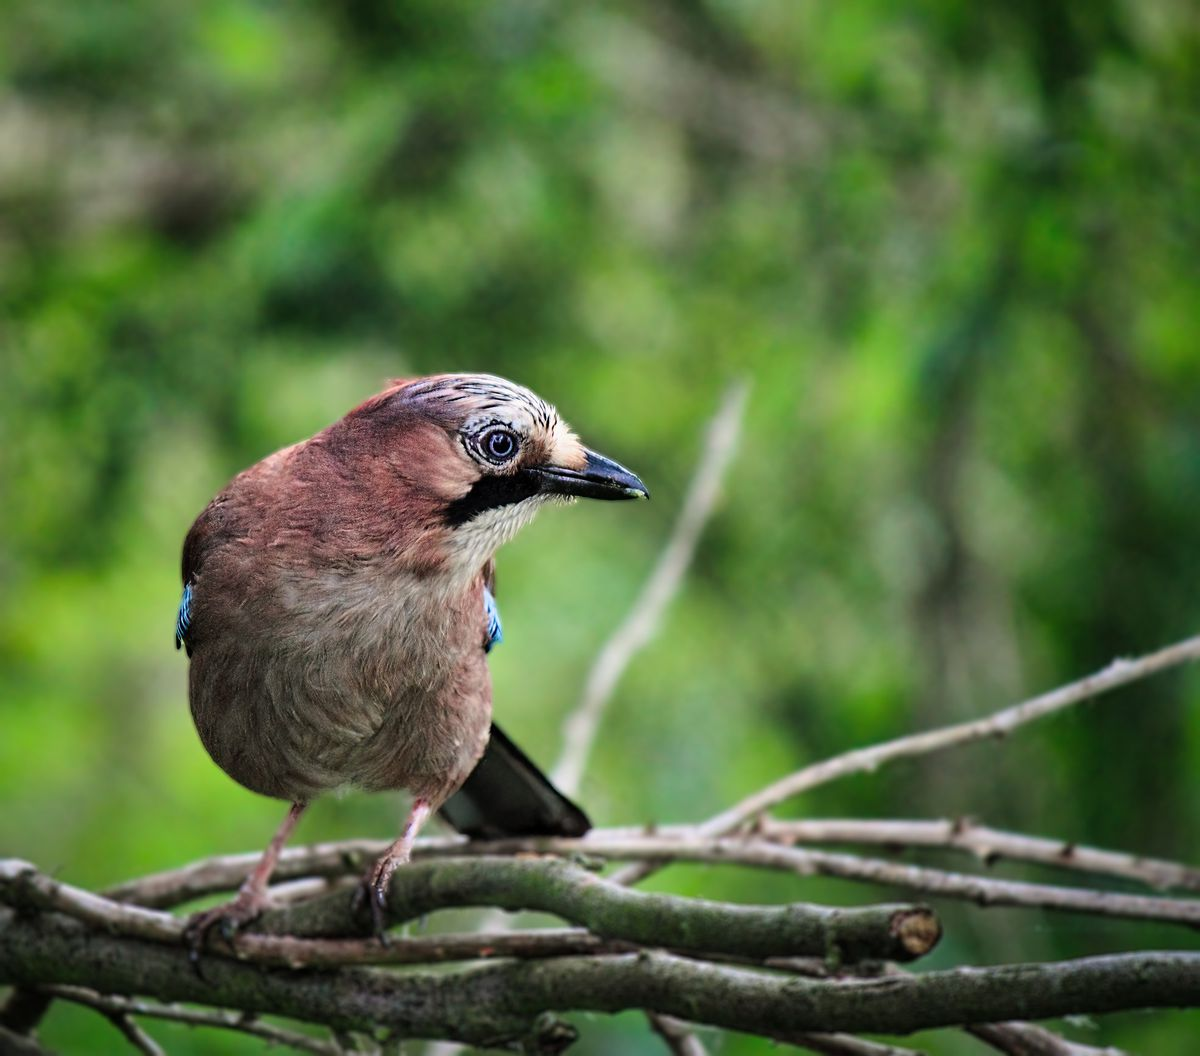 The handsome jay